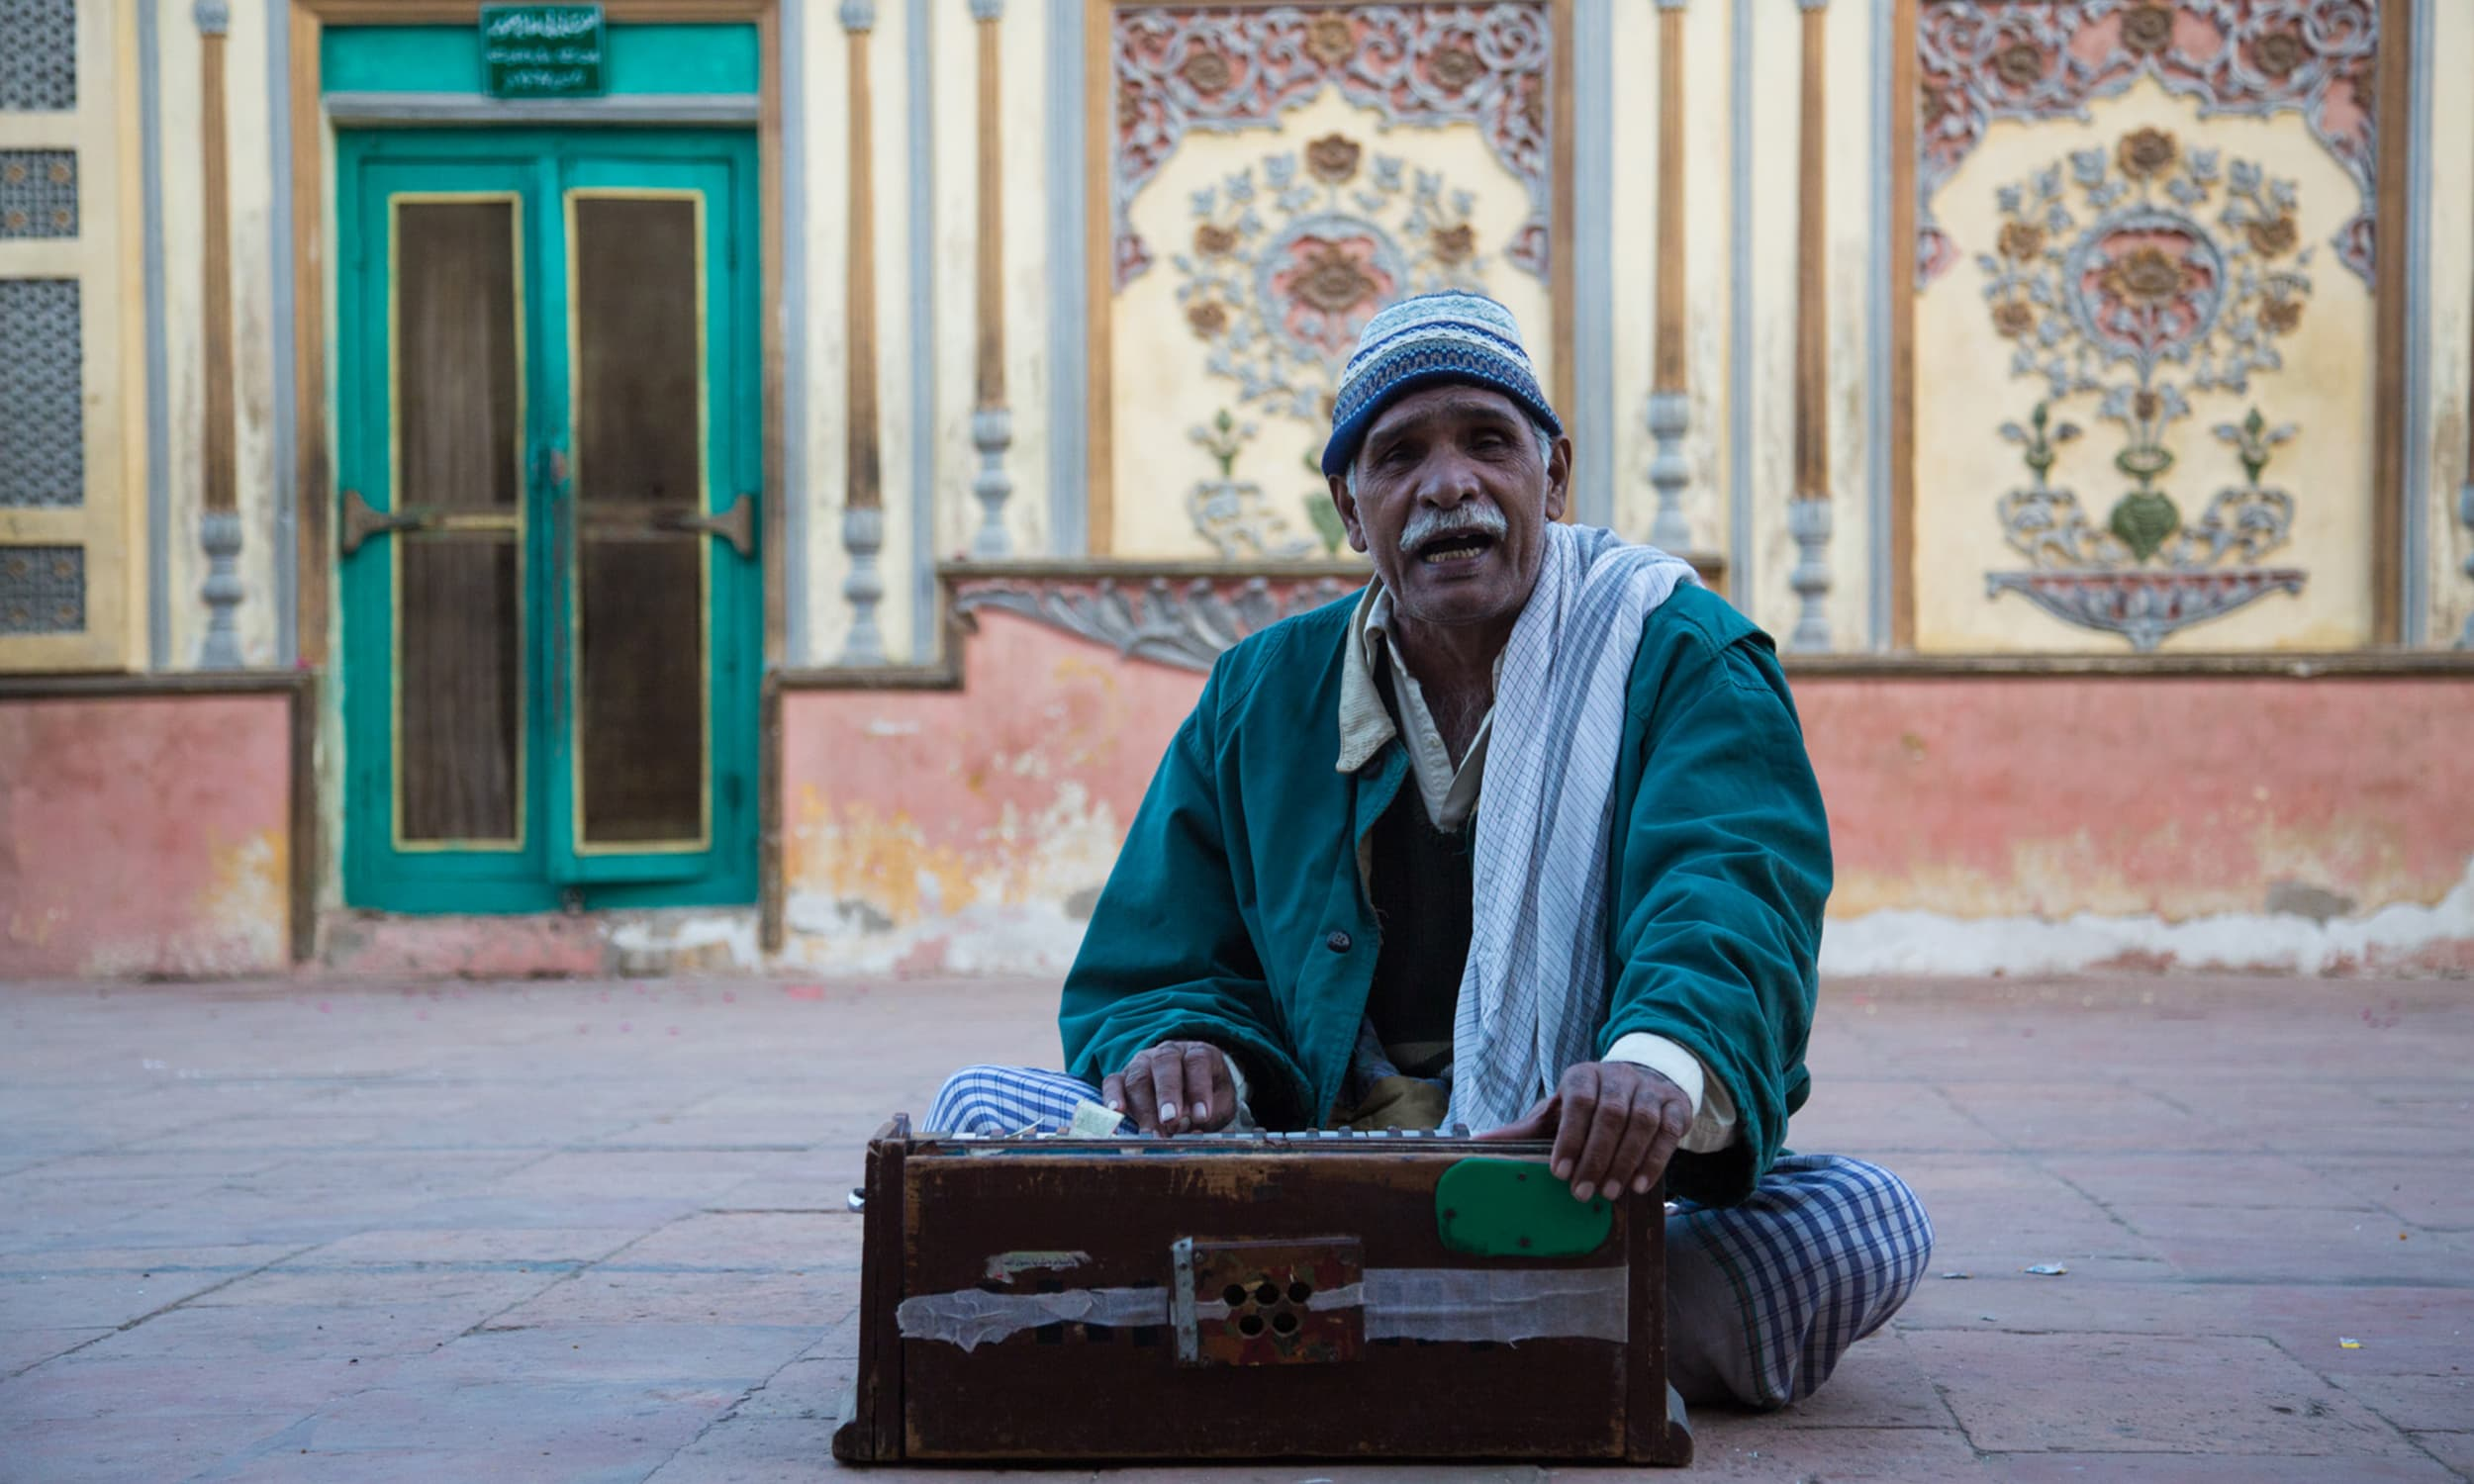 A man plays the harmonium and sings inside the shrine of Khawaja Ghulam Farid